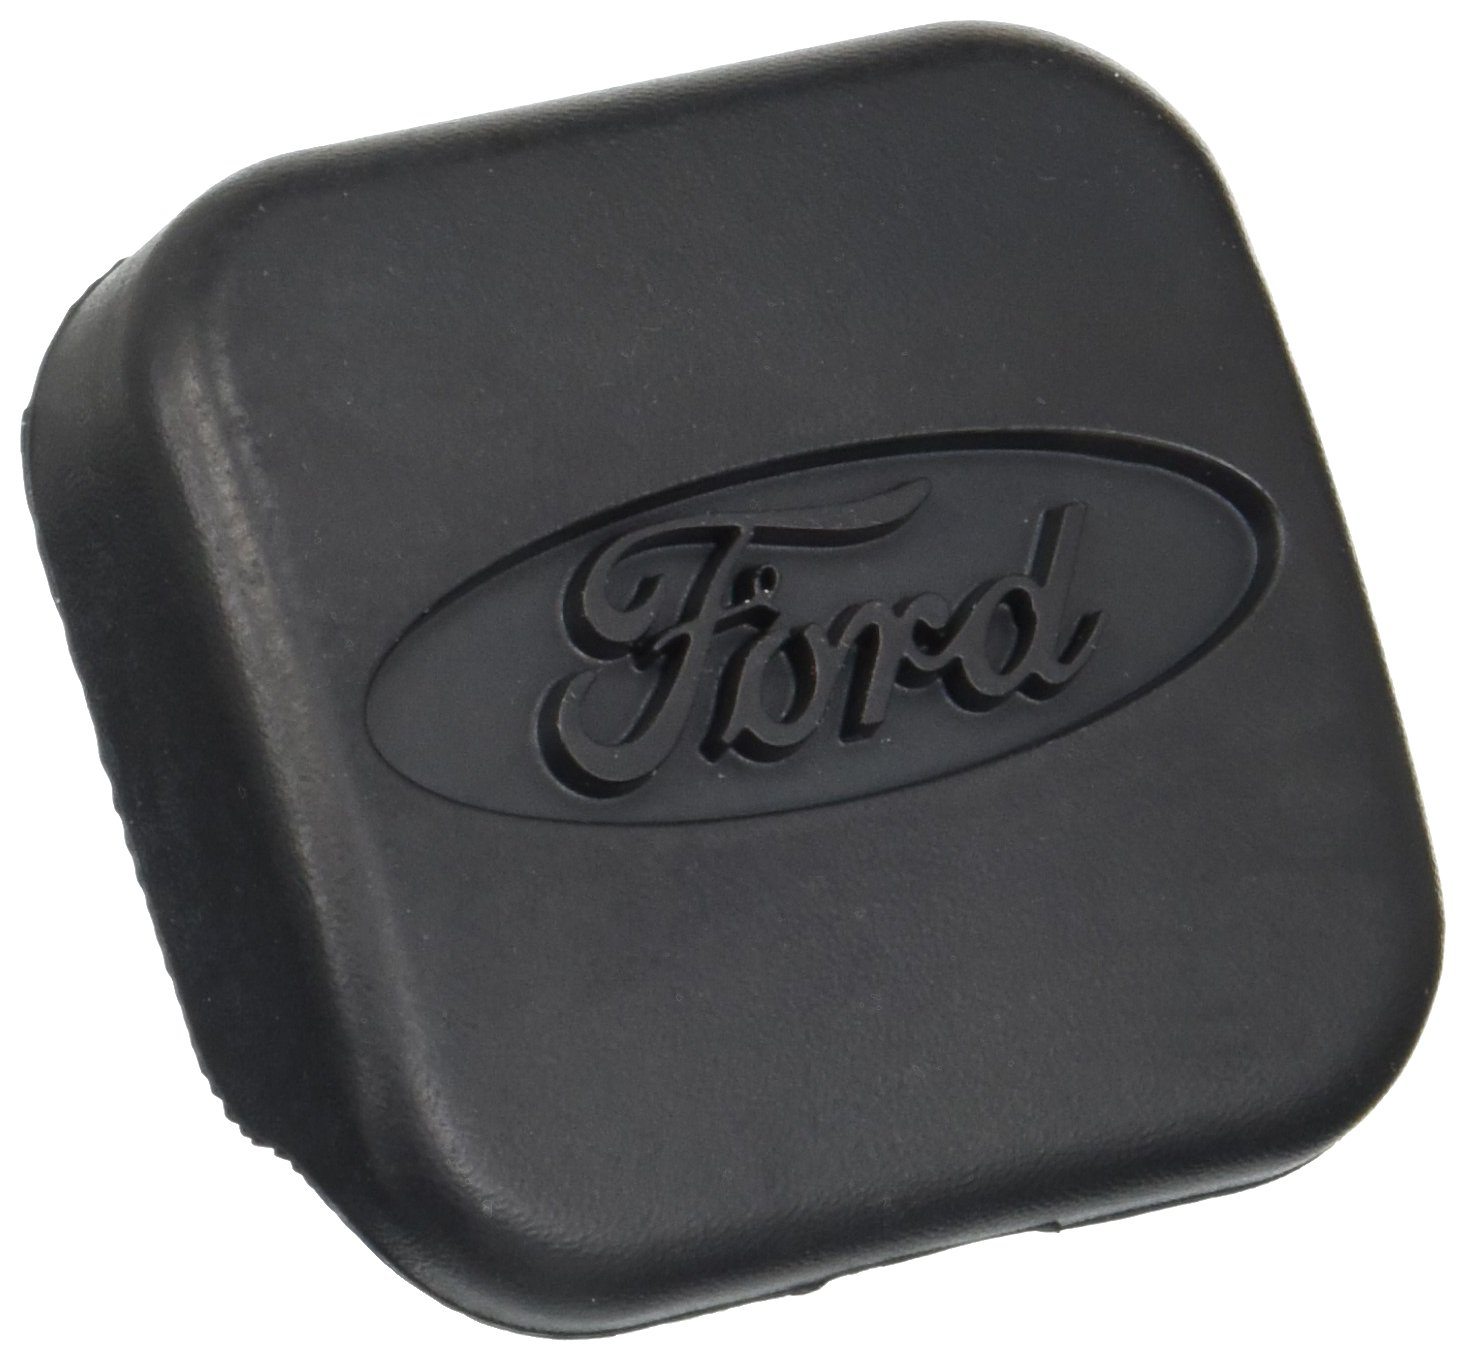 Genuine Ford 1L2Z-17F000-AA Trailer Hitch Receiver Cover Cap